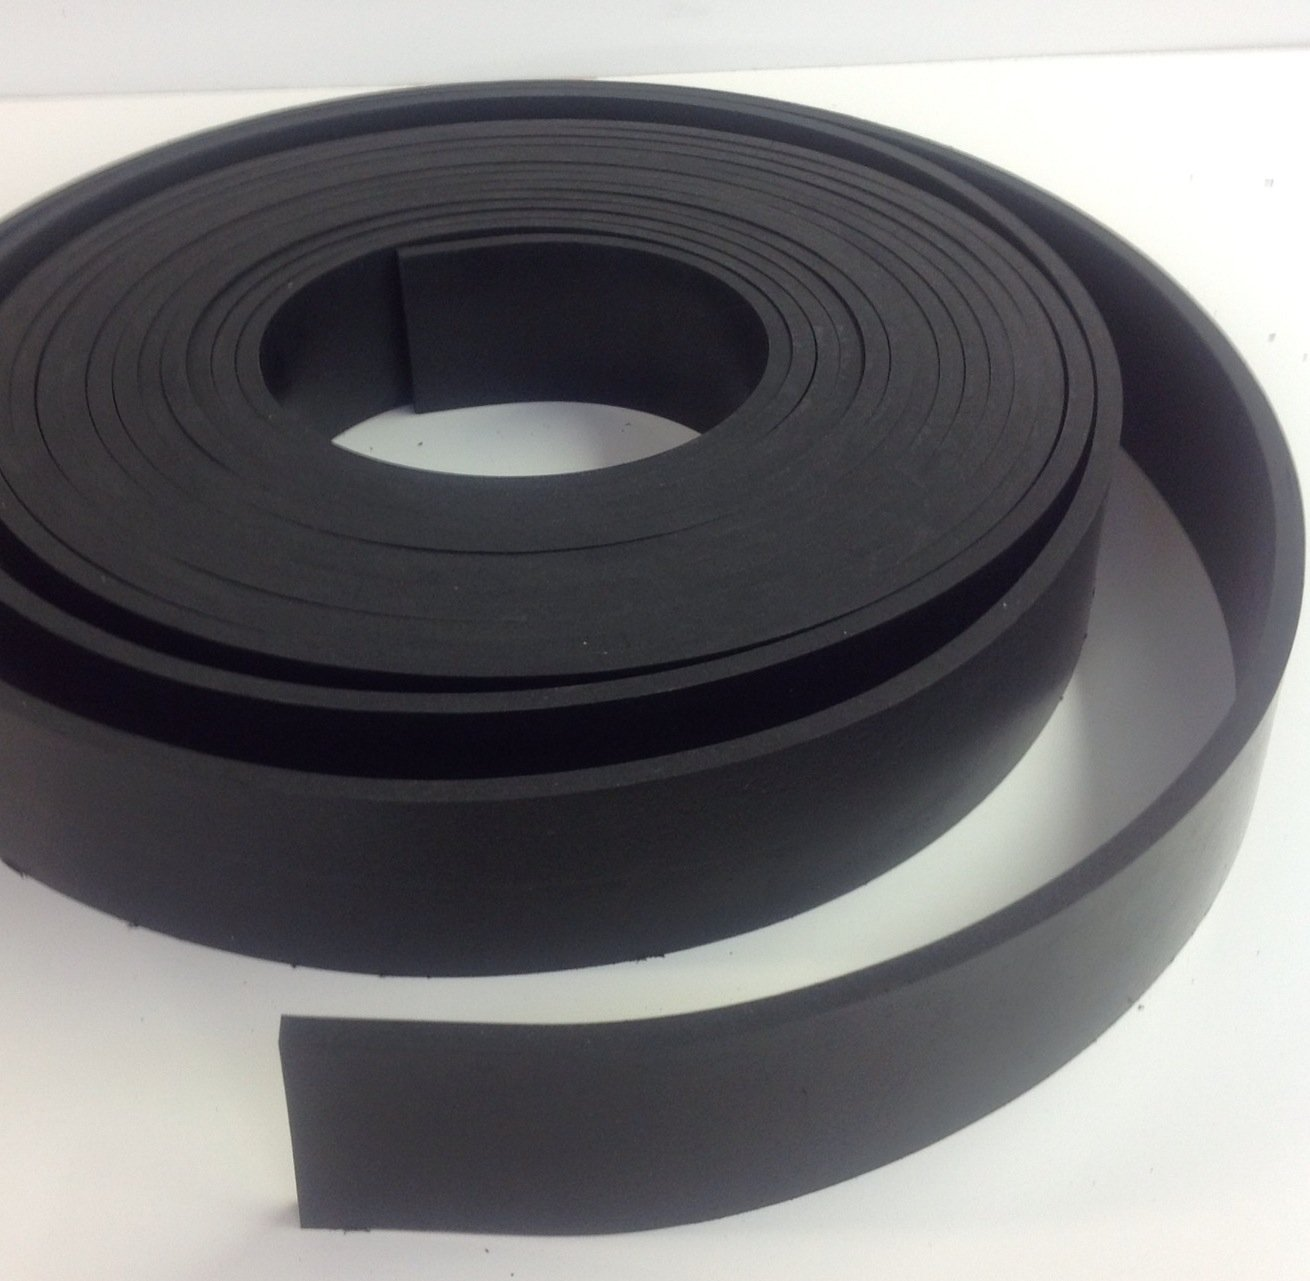 Solid Rubber Rubber Sheet Warehouse .125 Perfect for Weather Stripping Thick x 3 Wide x 10 Feet -Neoprene Rubber Strip Commercial Grade 65A Gasket 1//8 Costume /& DIY Projects Smooth Finish